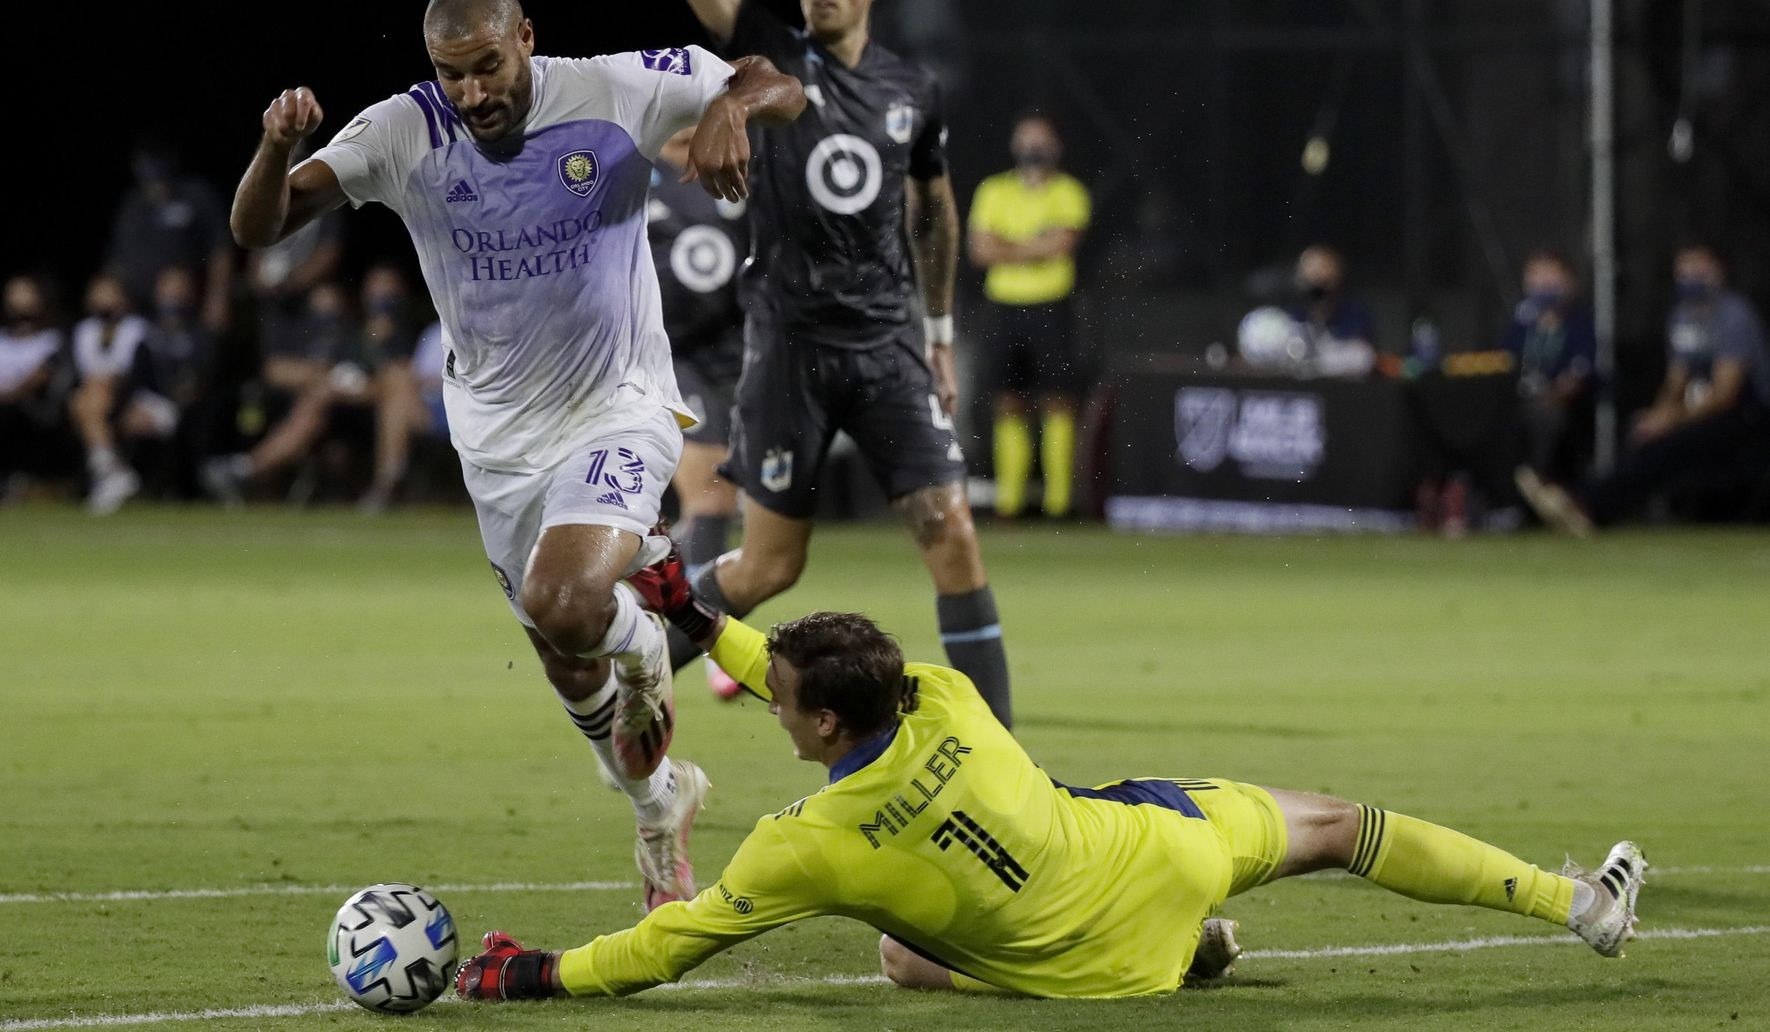 Mls_orlando_city_minnesota_united_soccer_59847_c0-155-3715-2321_s1770x1032